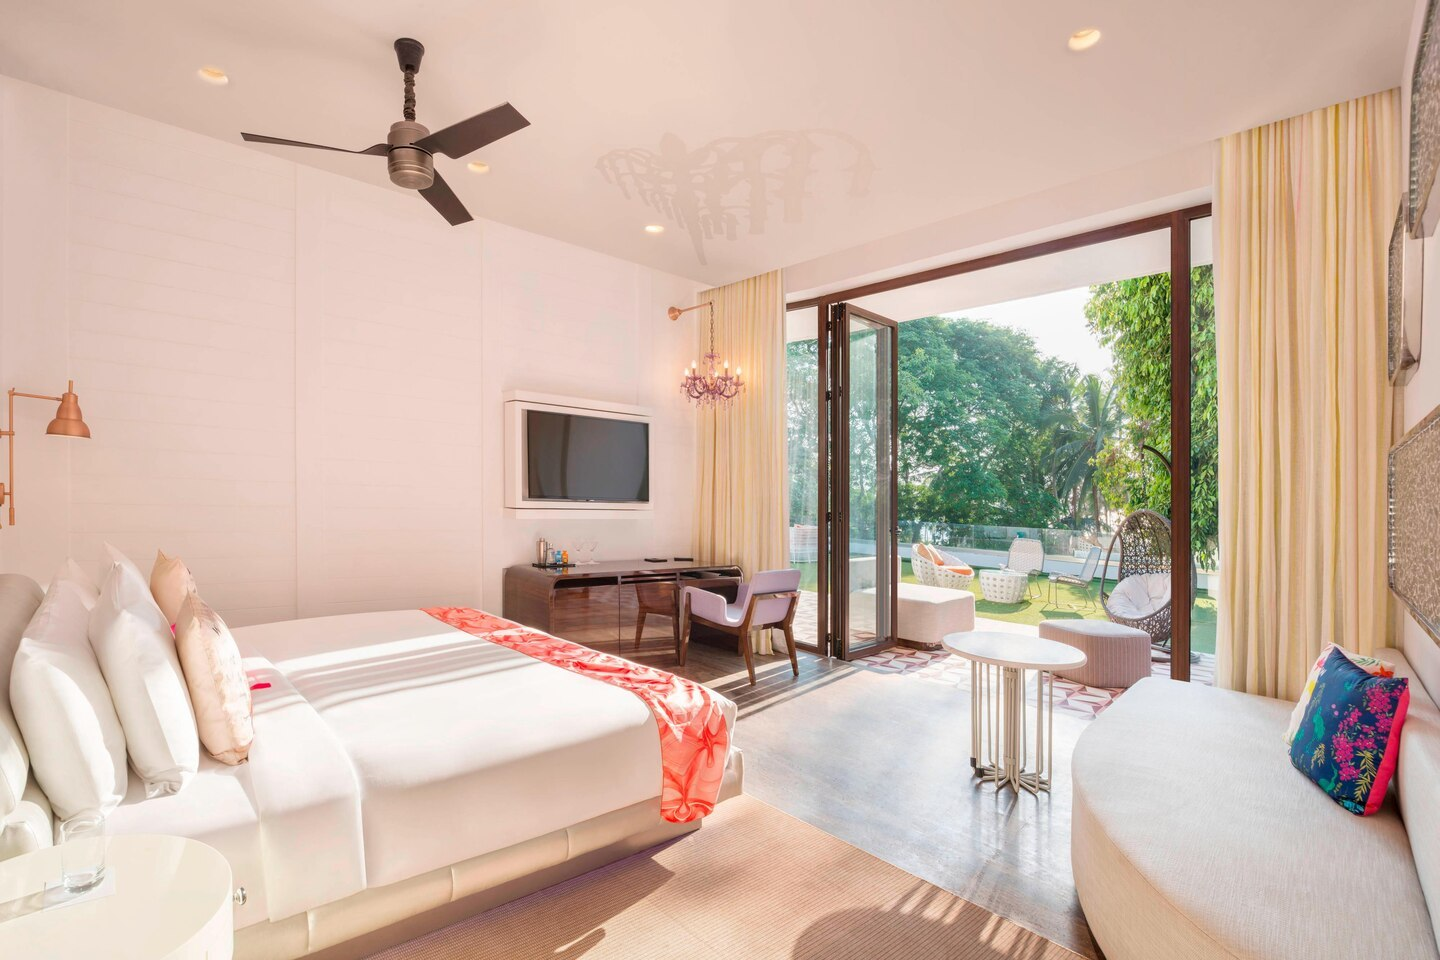 goiwh-spectacular-bedroom-3541-hor-clsc